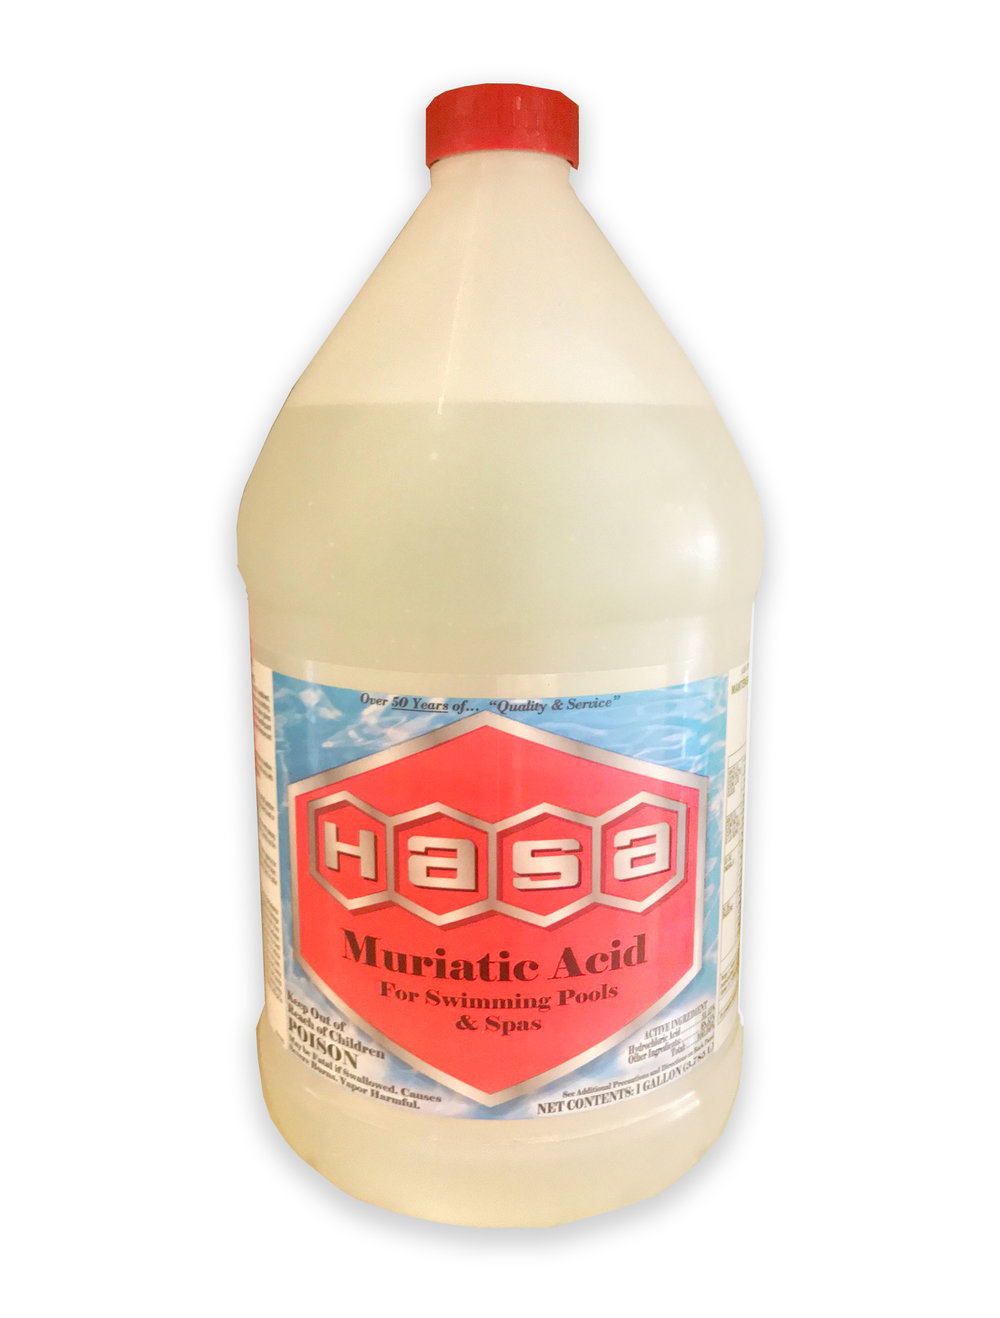 HASA MURIATIC ACID  Hydrochloric Acid Lowers Swimming Pool Water's pH. Used to lower Alkalinity. Scale Removal.